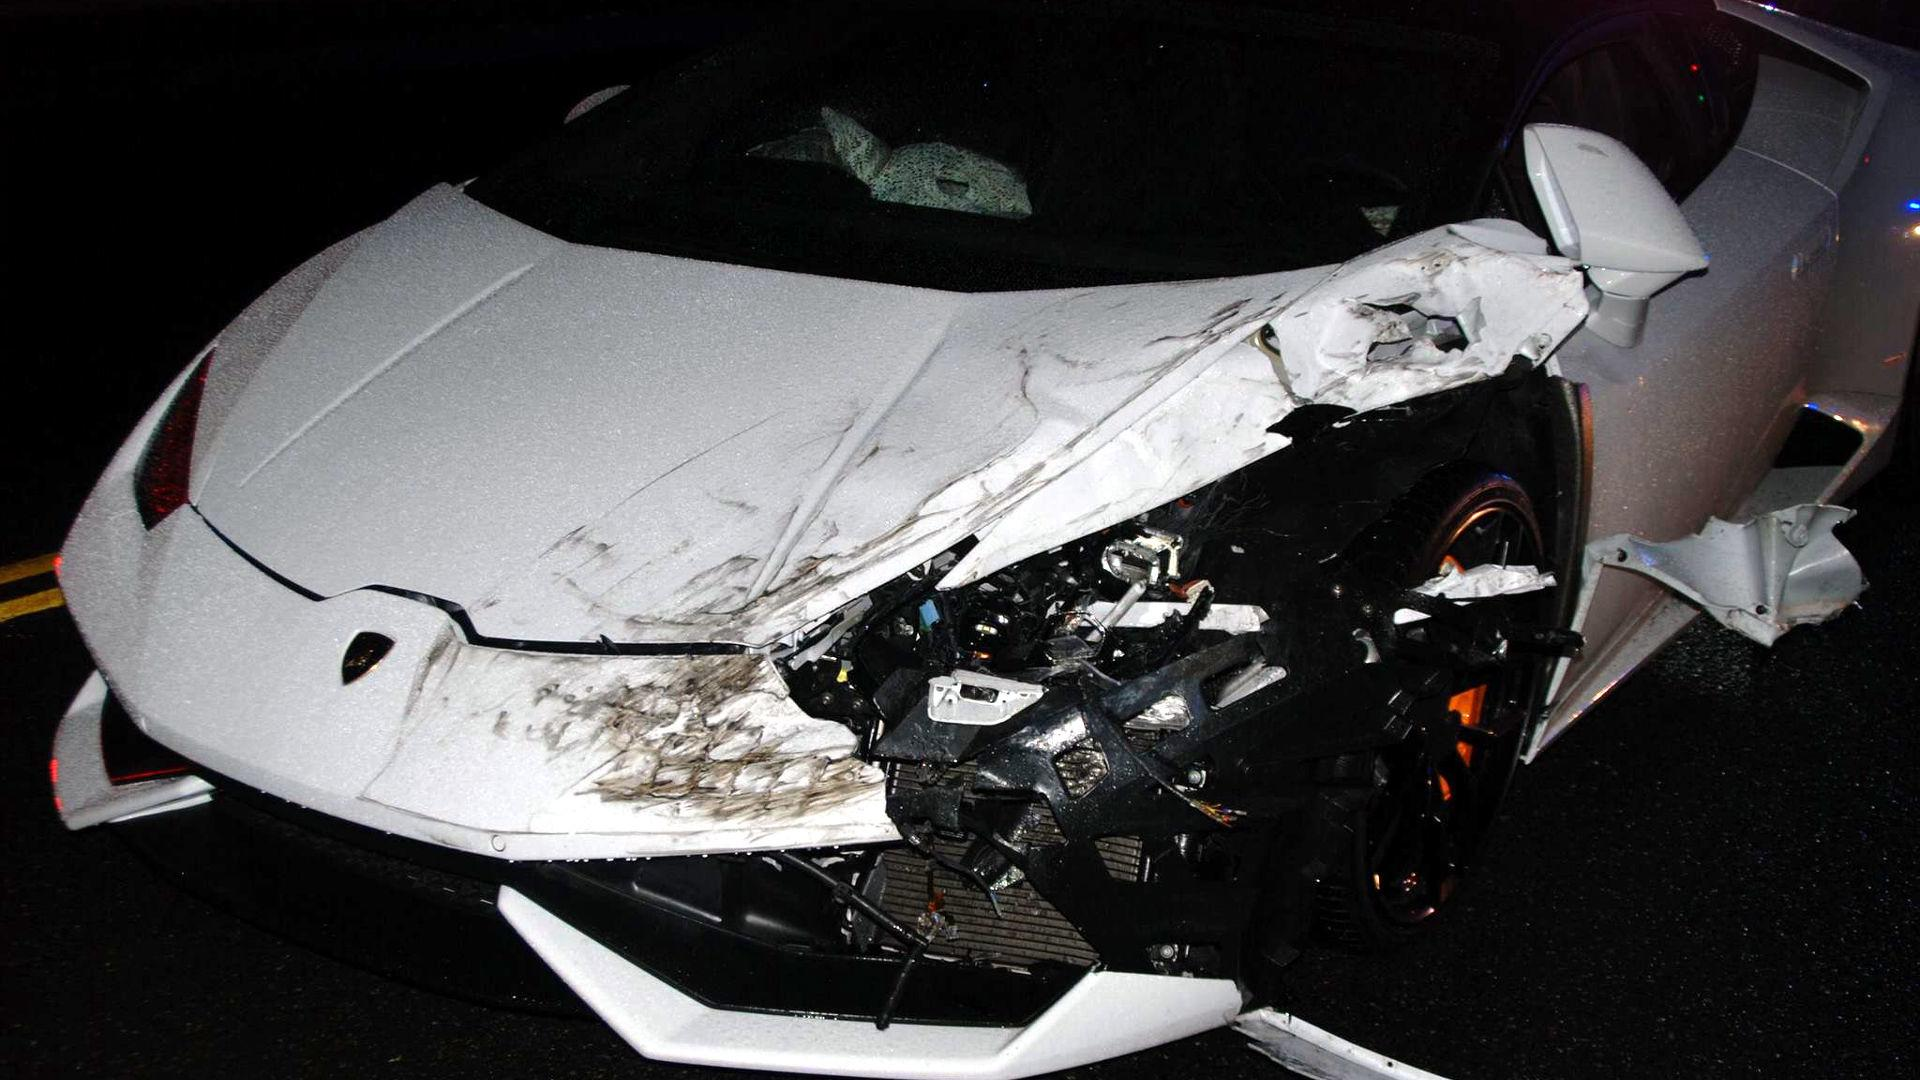 23 Year Old Party Goer Crashes Rented Lamborghini In Police Chase